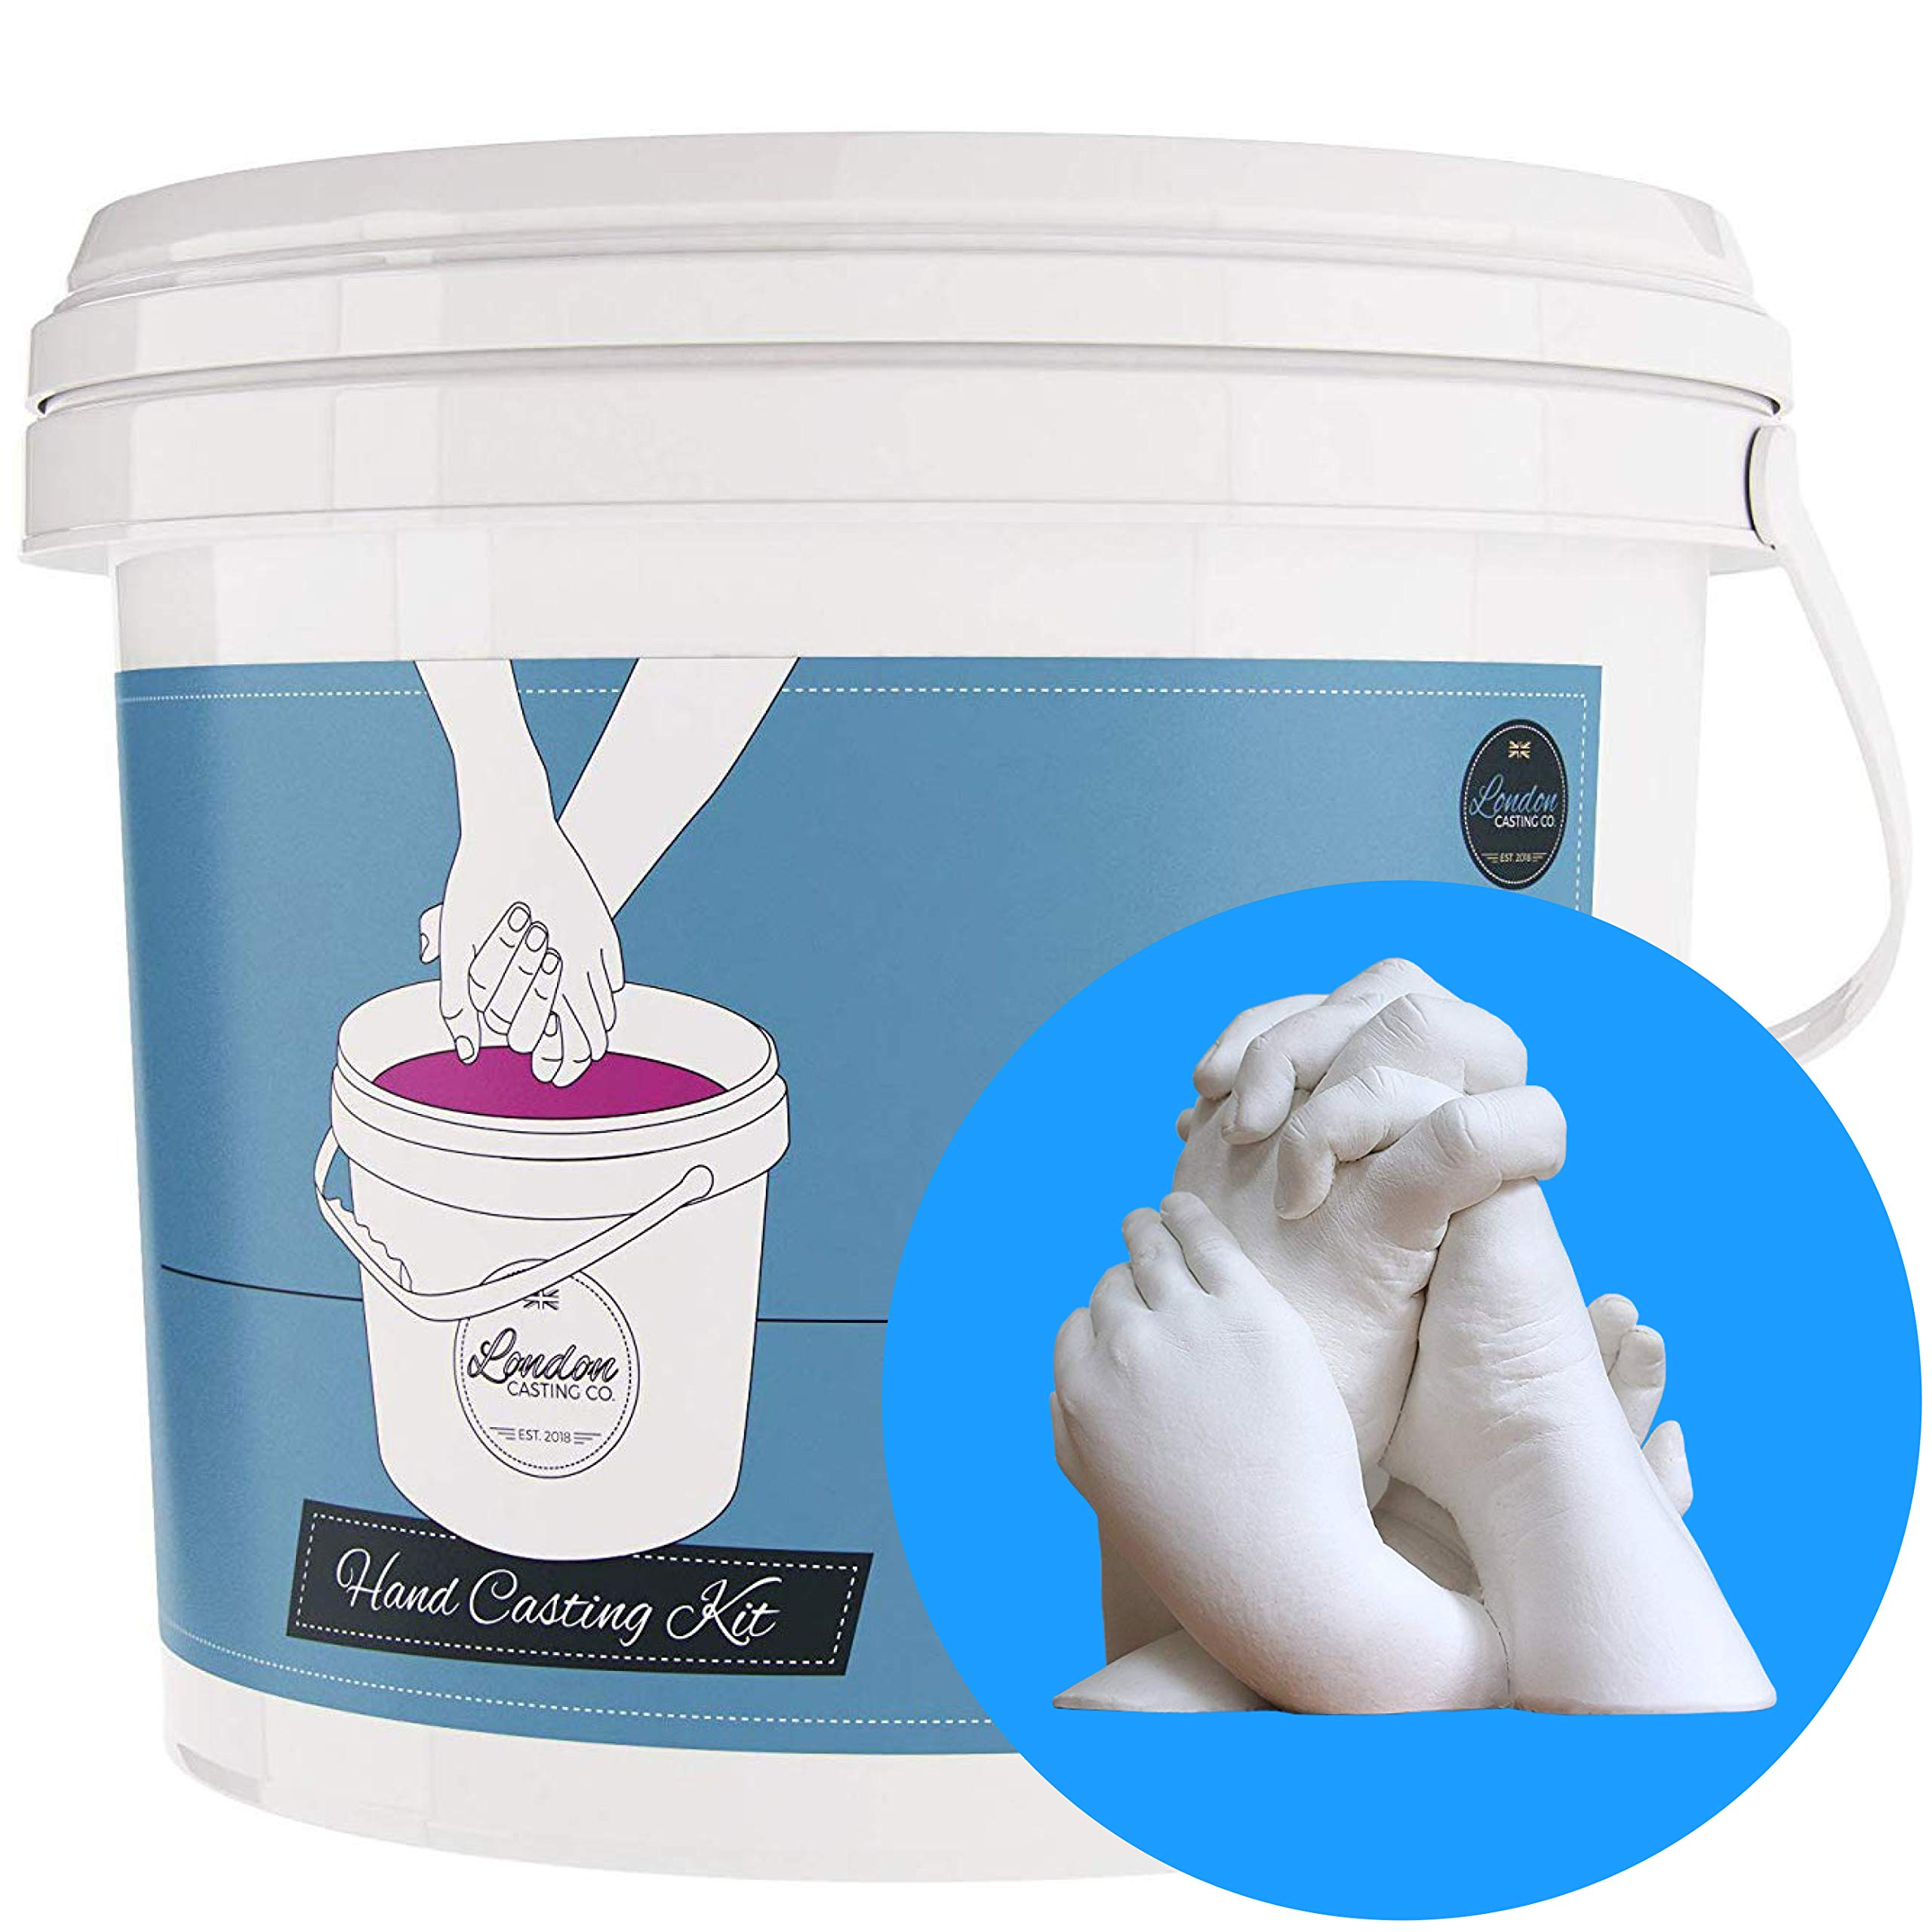 X//Large 3D Baby Casting Bucket Kit for Hands or Feet